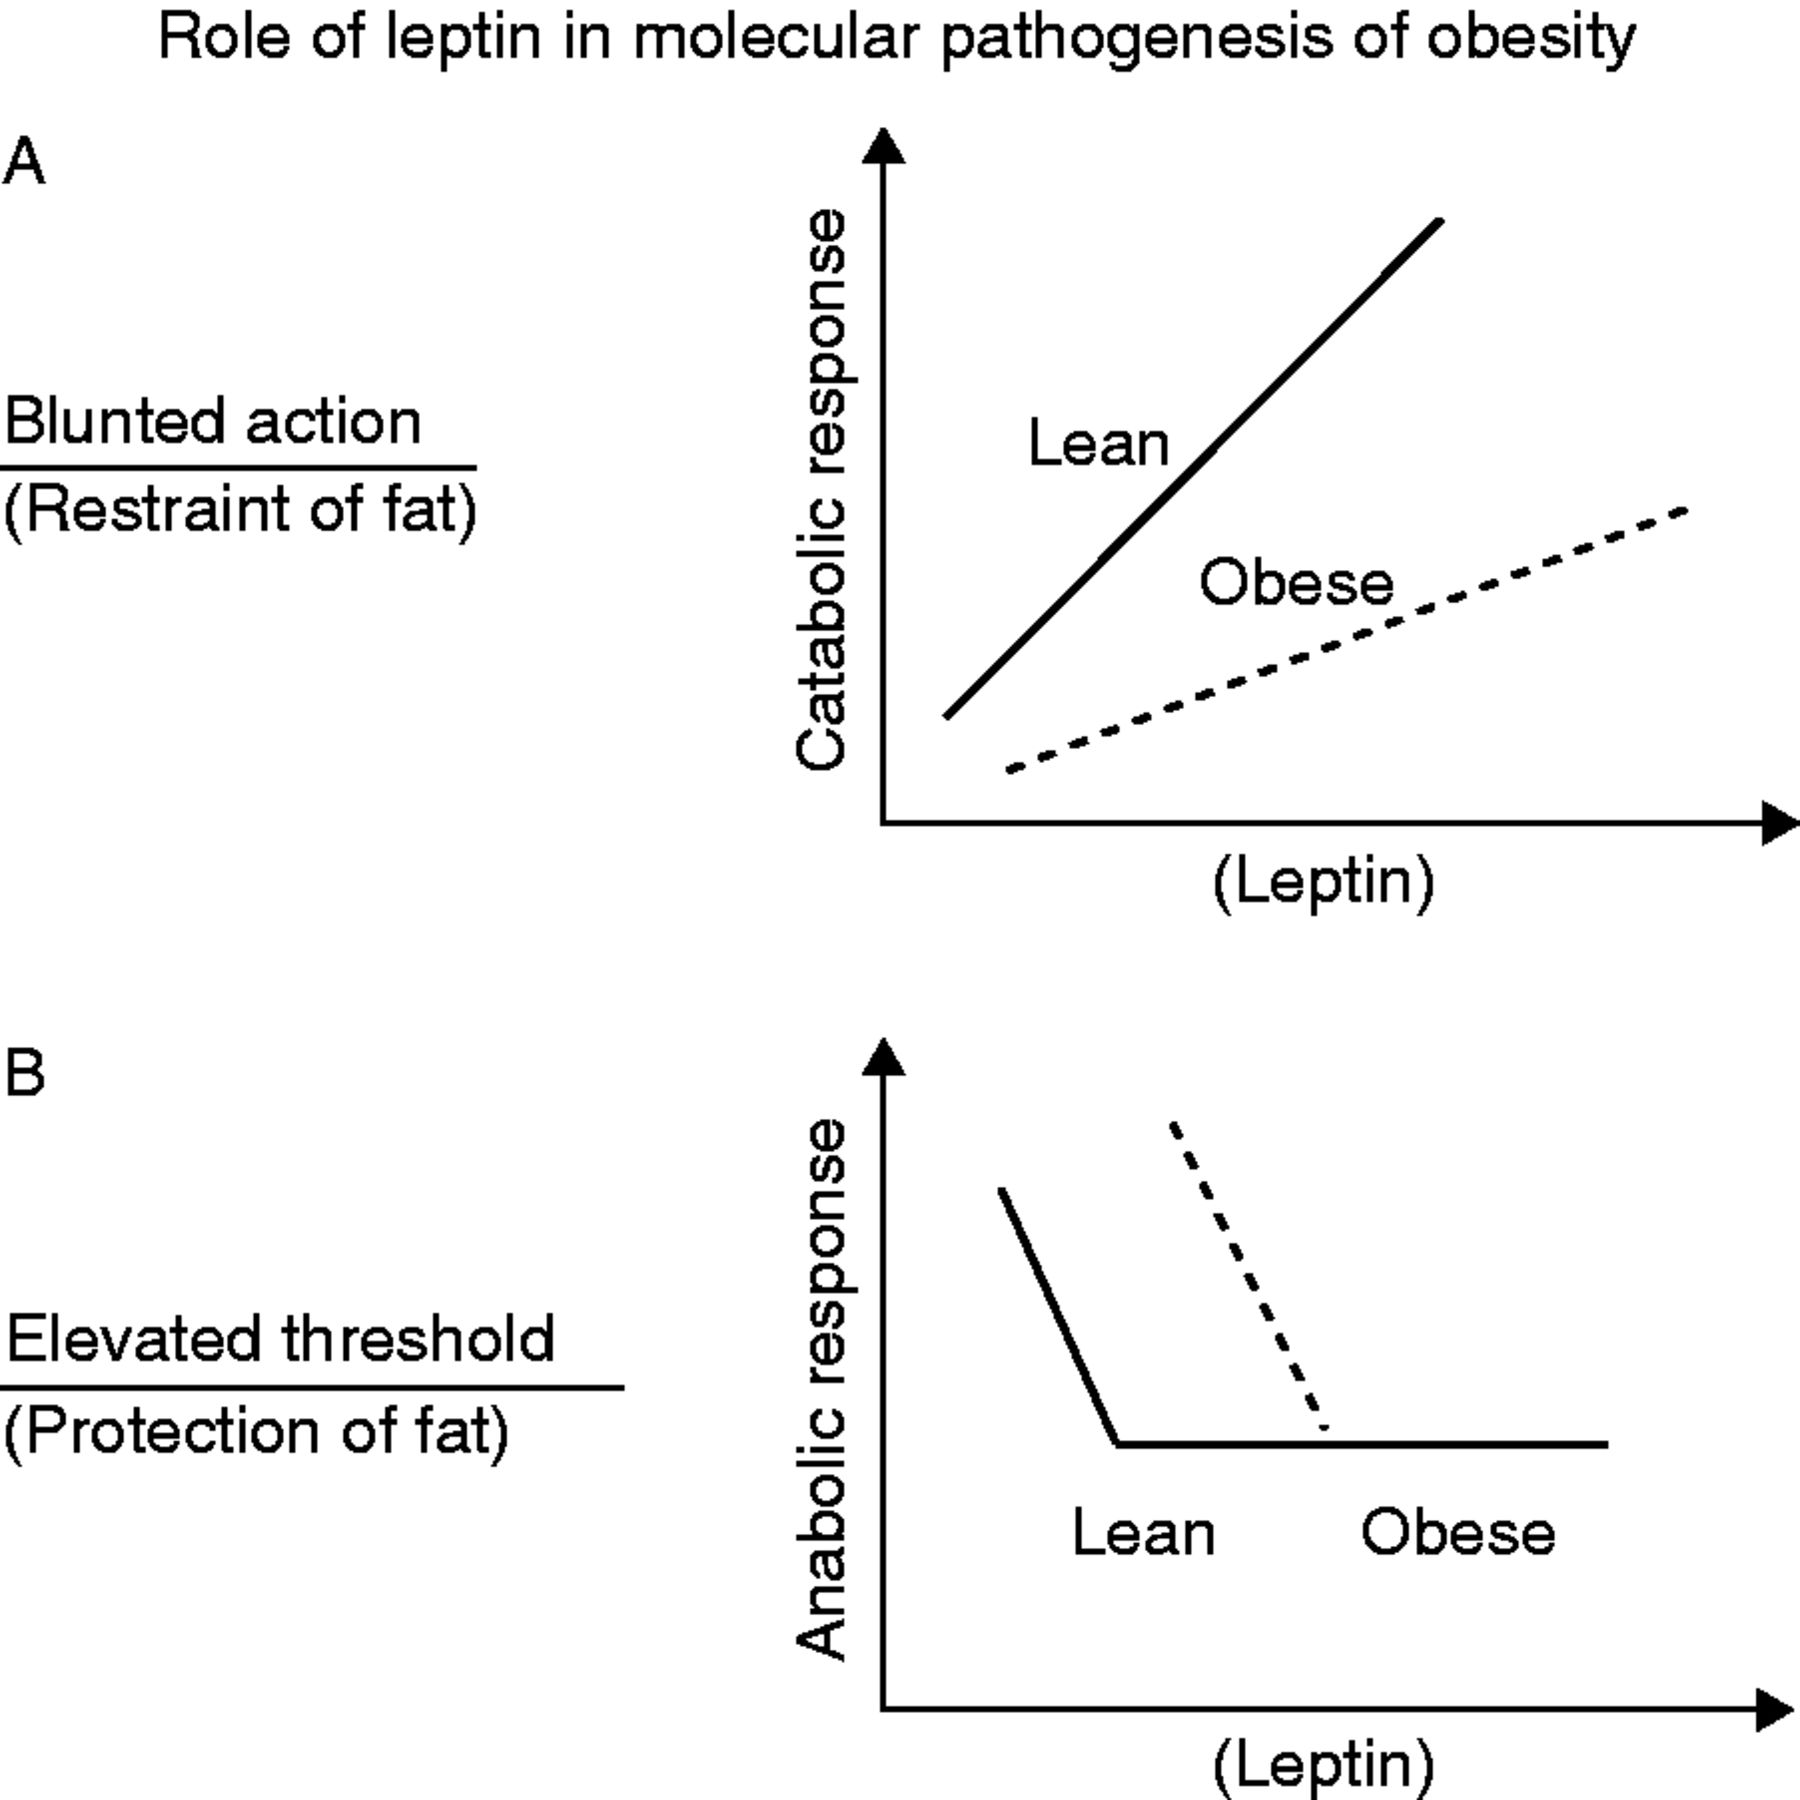 20 YEARS OF LEPTIN: Role of leptin in energy homeostasis in